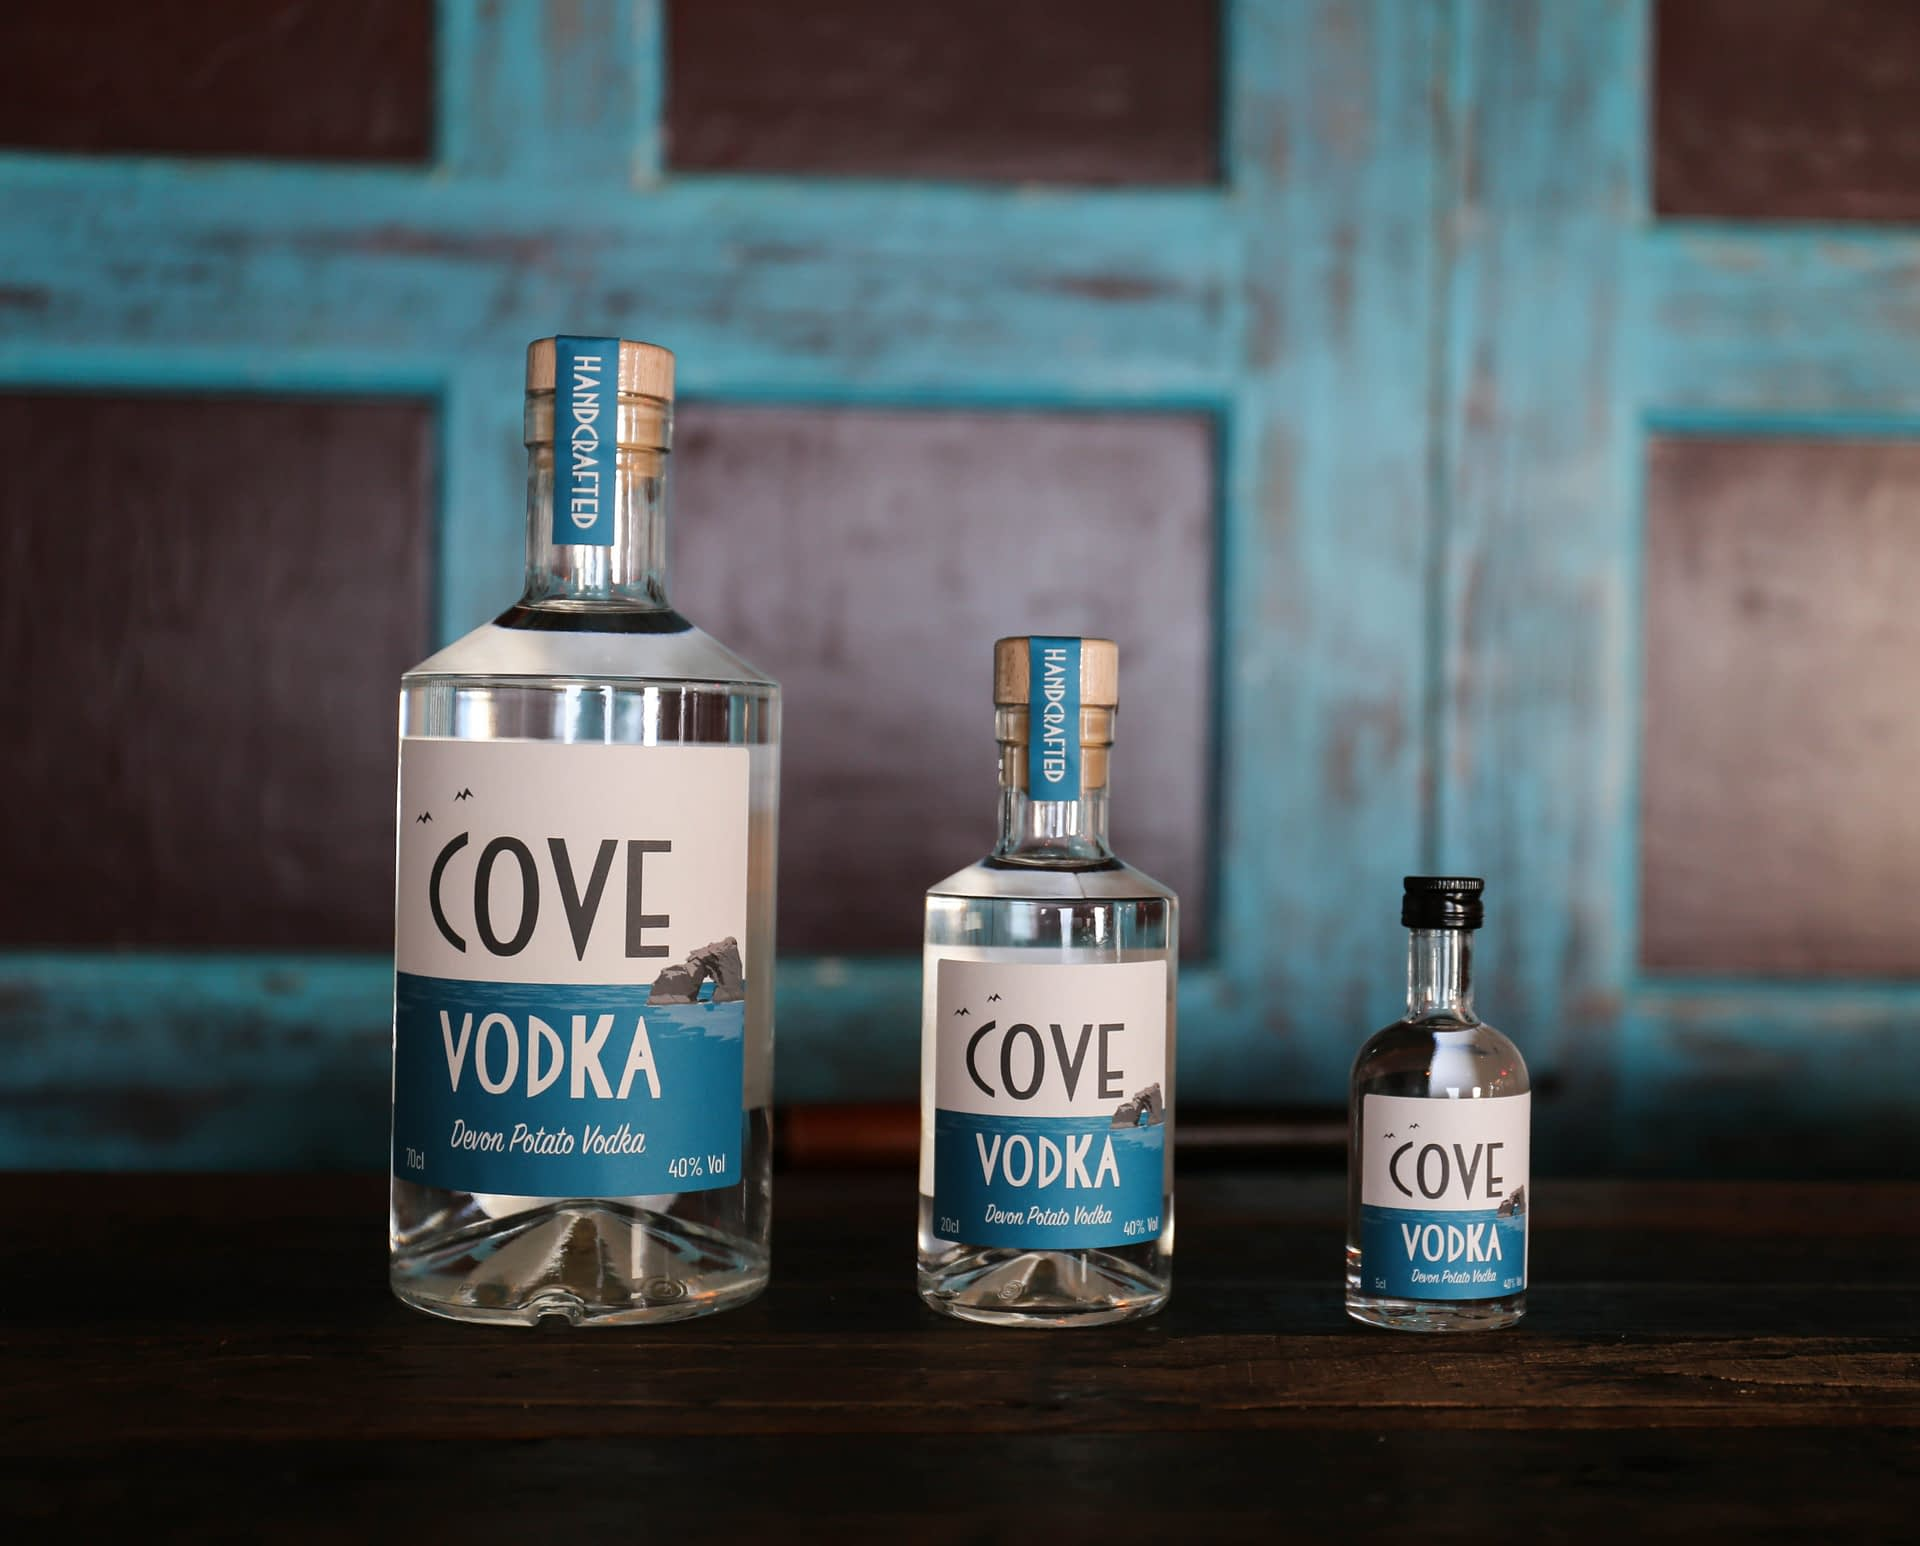 Cove Vodka bottles 70cl 20cl 5cl